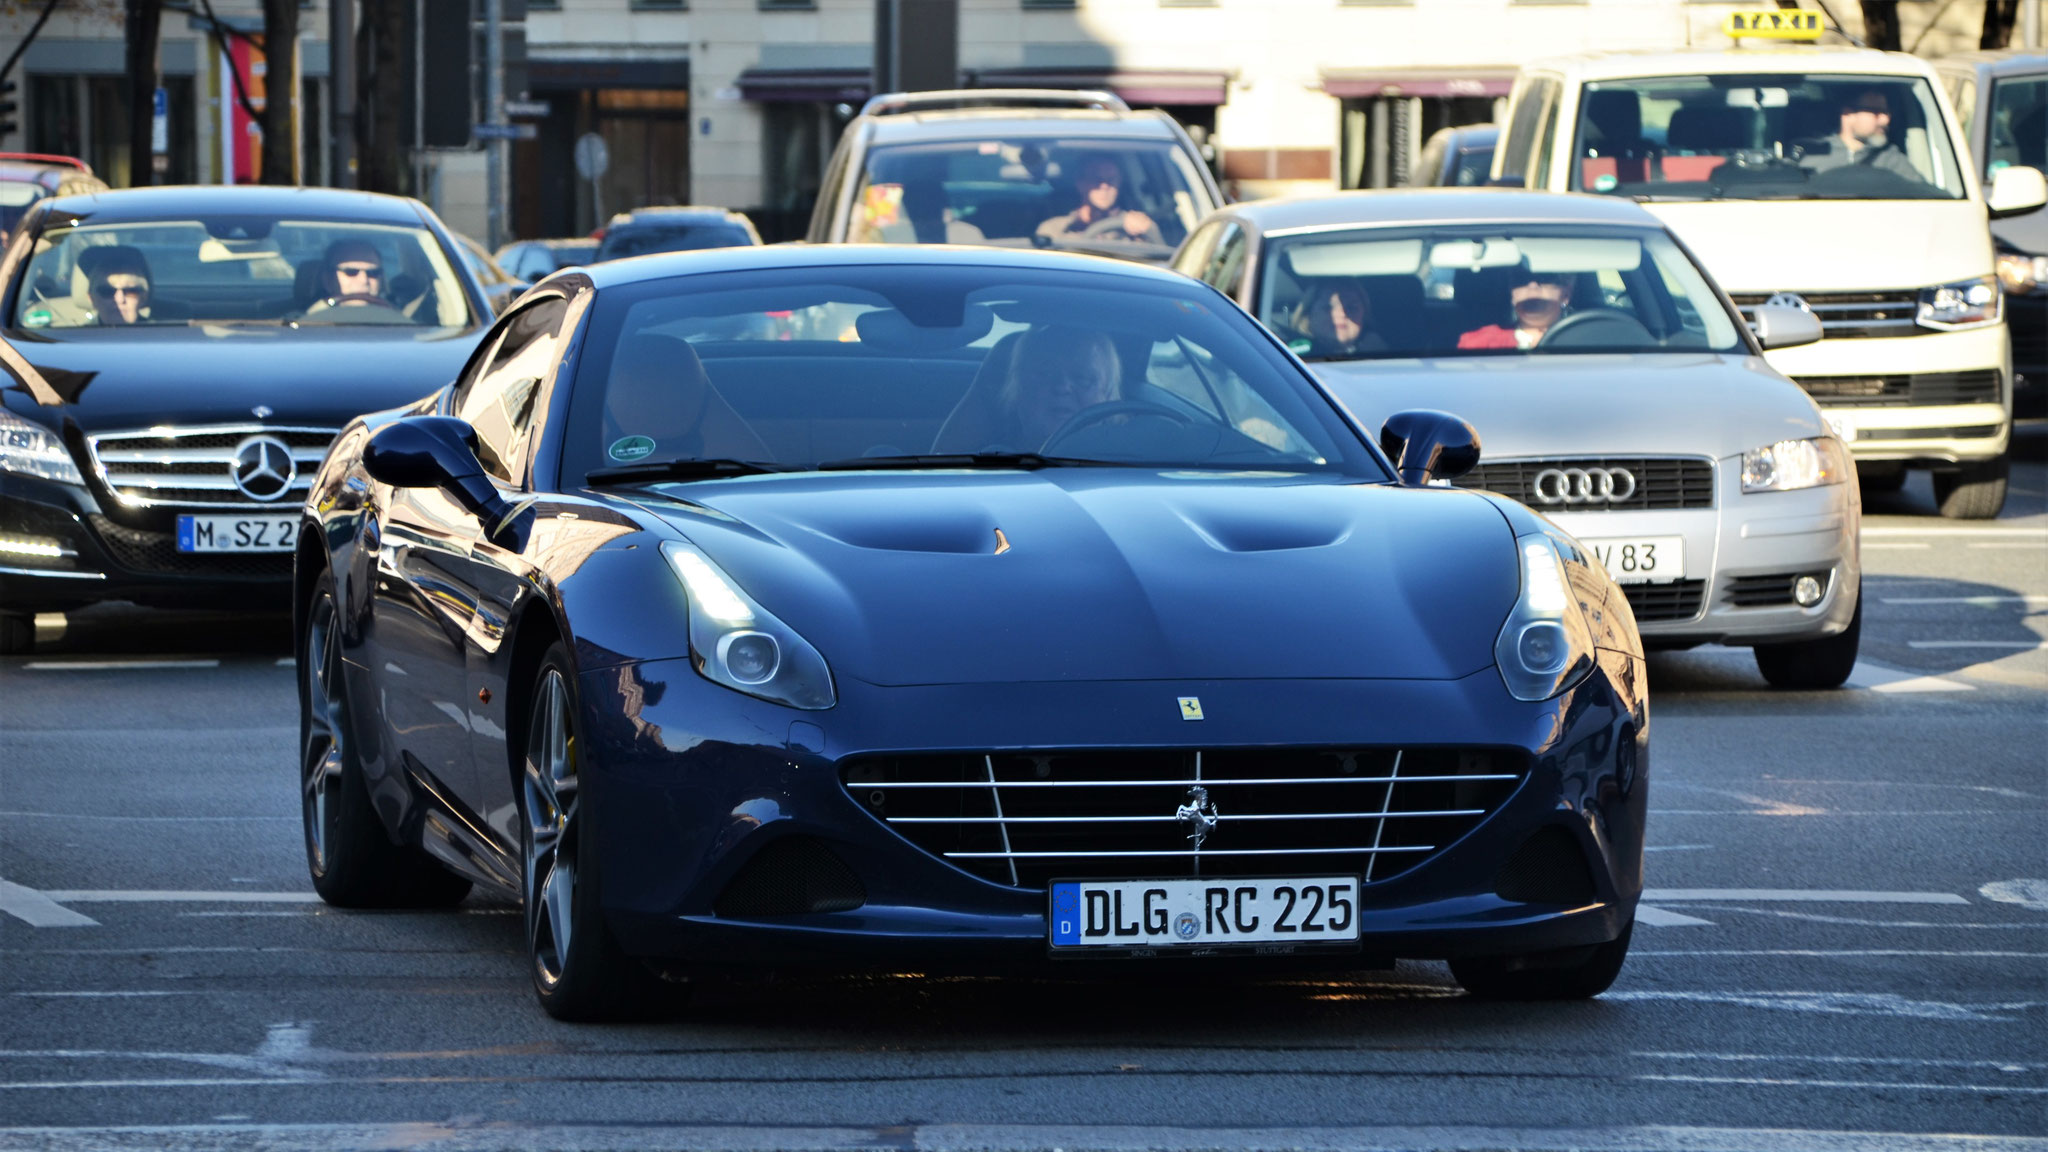 Ferrari California T - DLG-RC-225